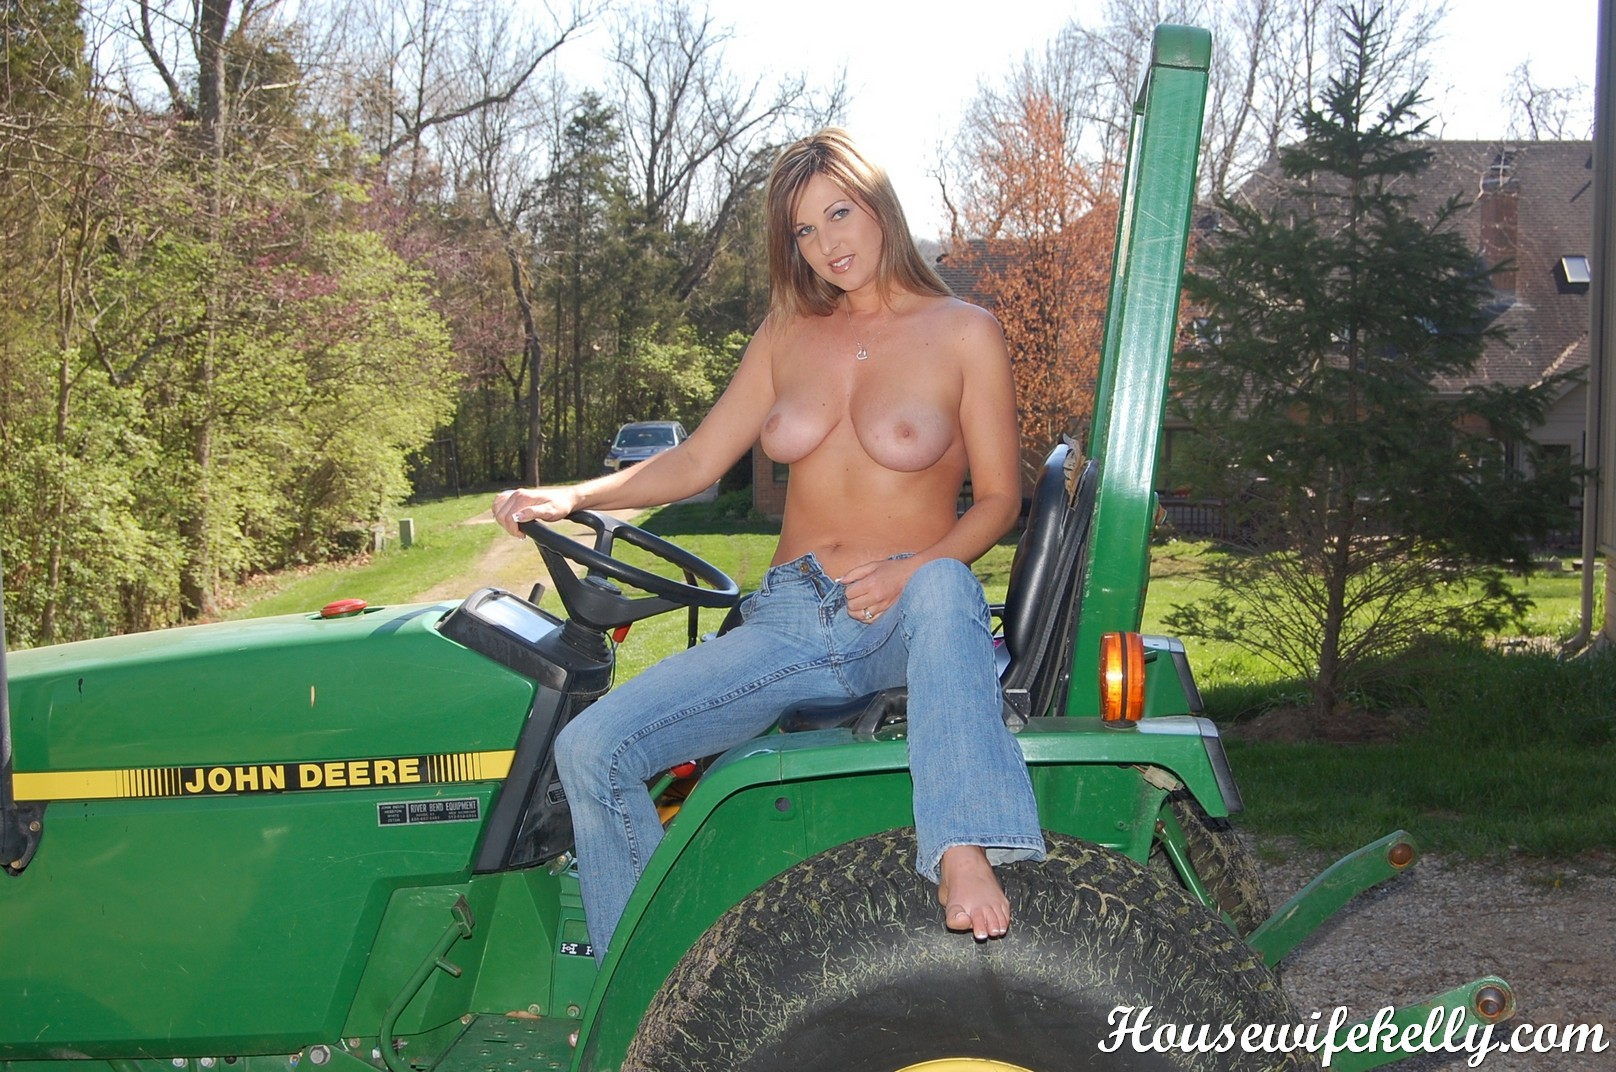 Speaking, would girls naked on a tractor think